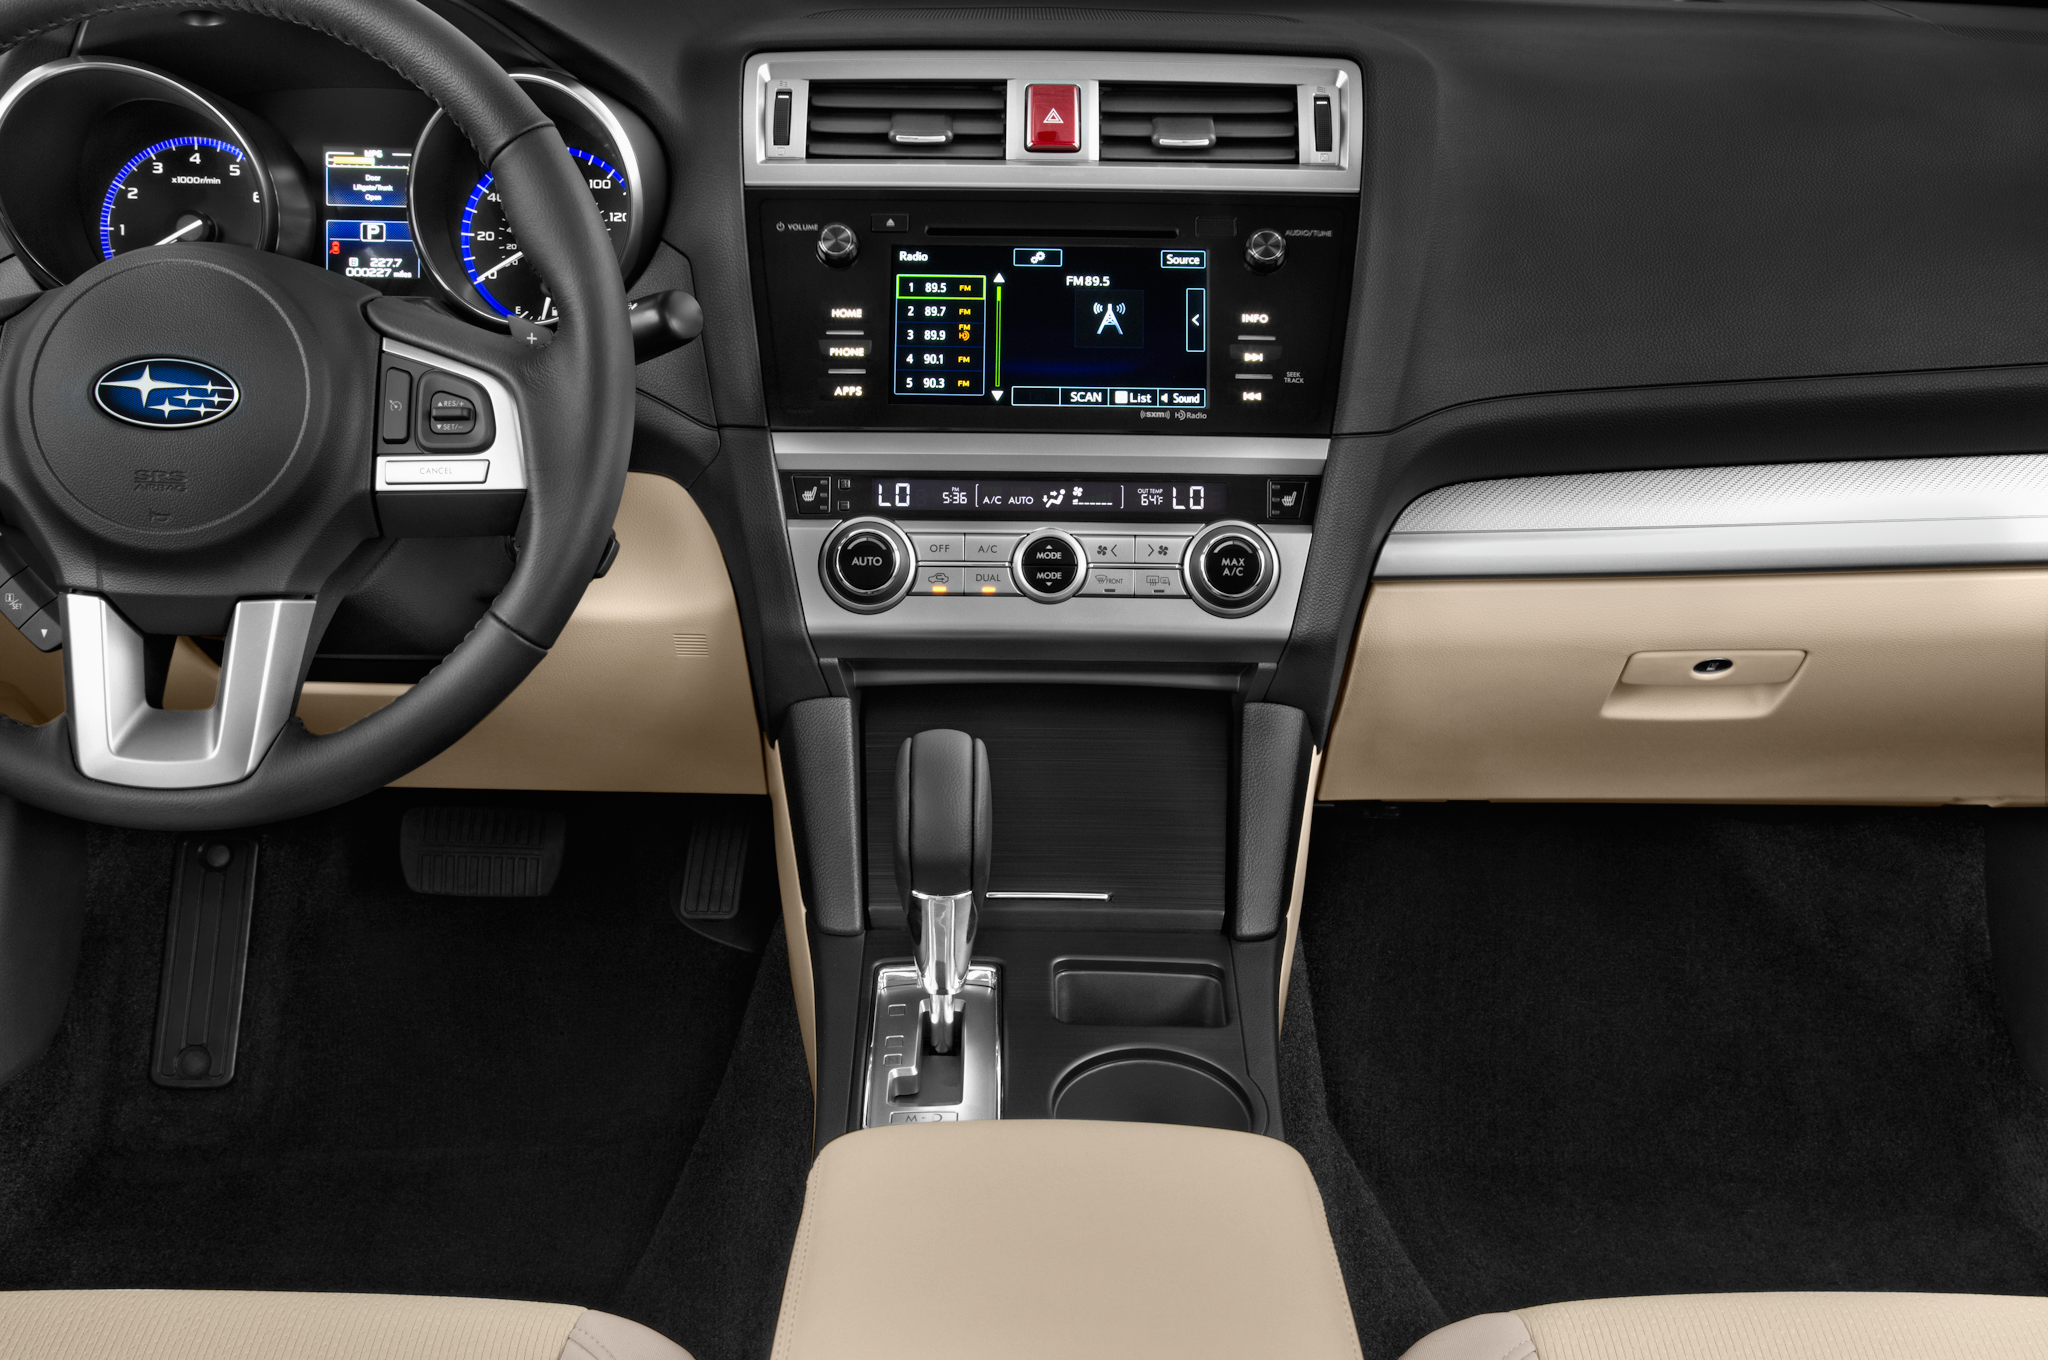 2009 subaru legacy concept to debut latest news features and 1828 vanachro Image collections